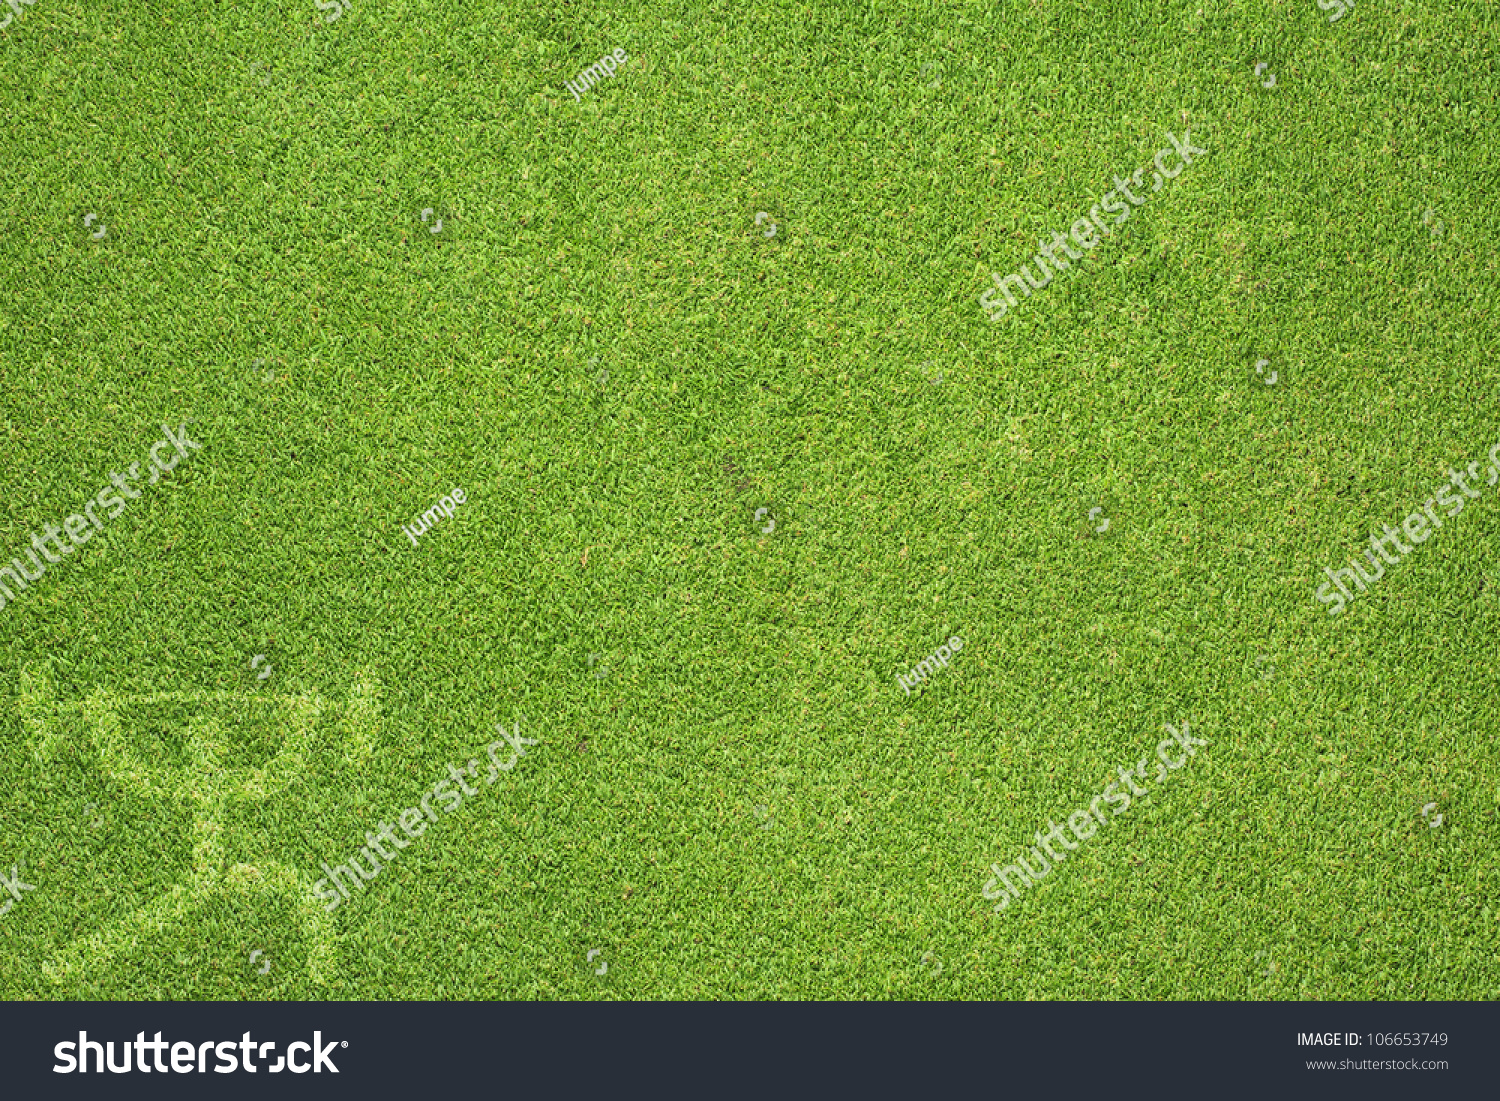 grass field and football frame stock photo